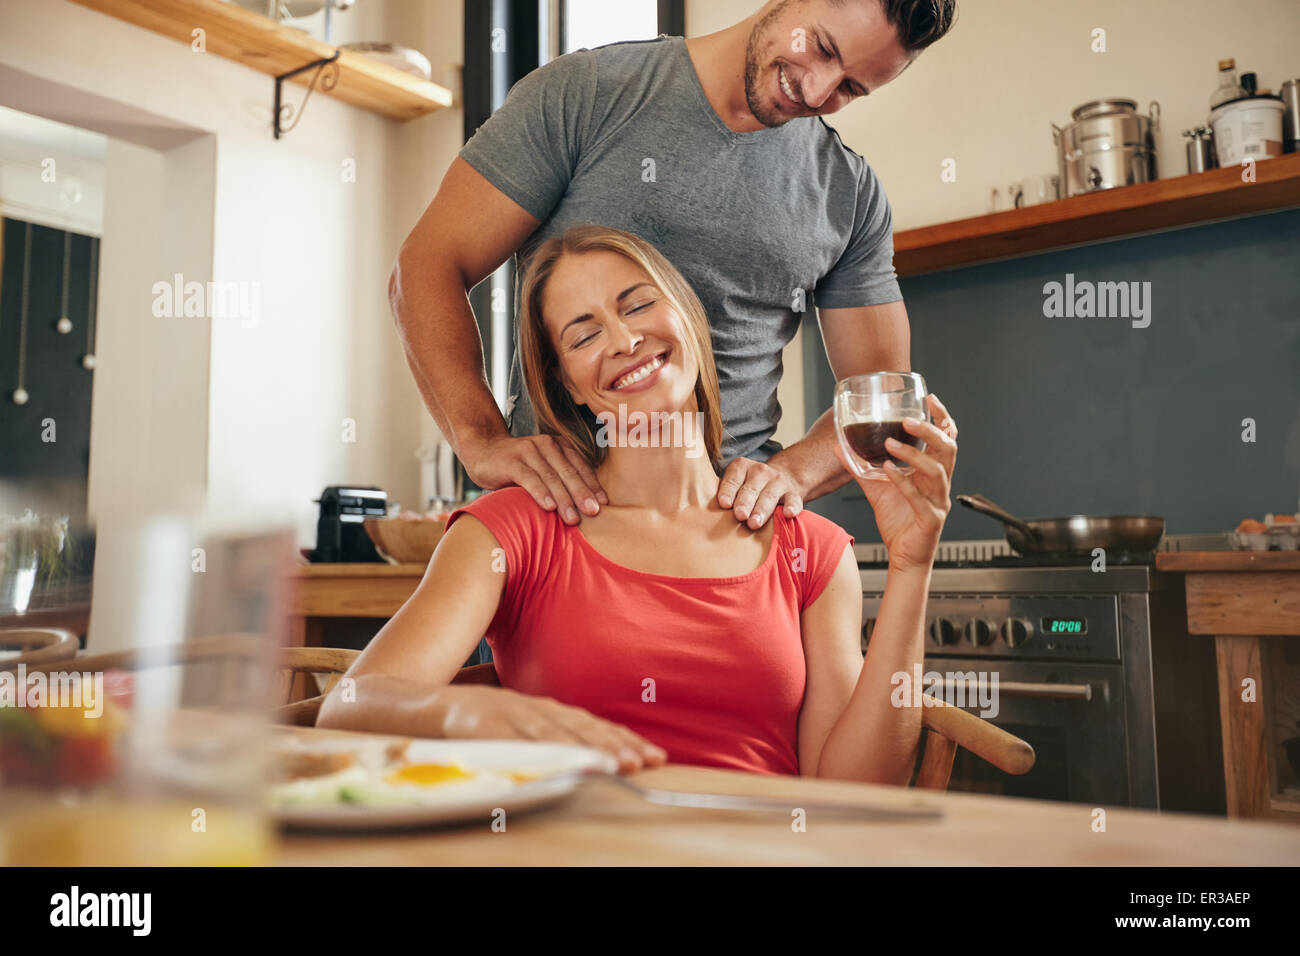 Happy young woman sitting at breakfast tablet holding cup of coffee getting a shoulder massage from her boyfriend. - Stock Image